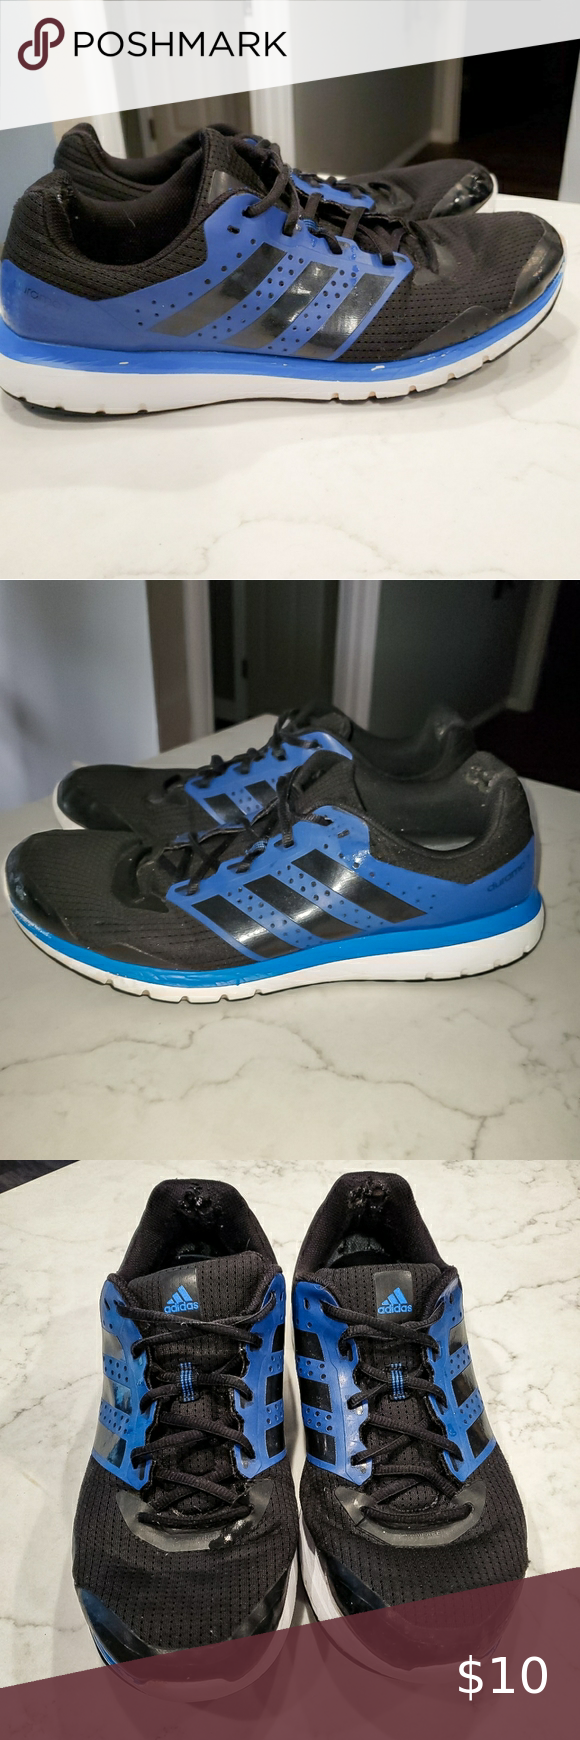 adidas Duramo 7 Mens Running Shoes - size 11 | Running shoes for ...